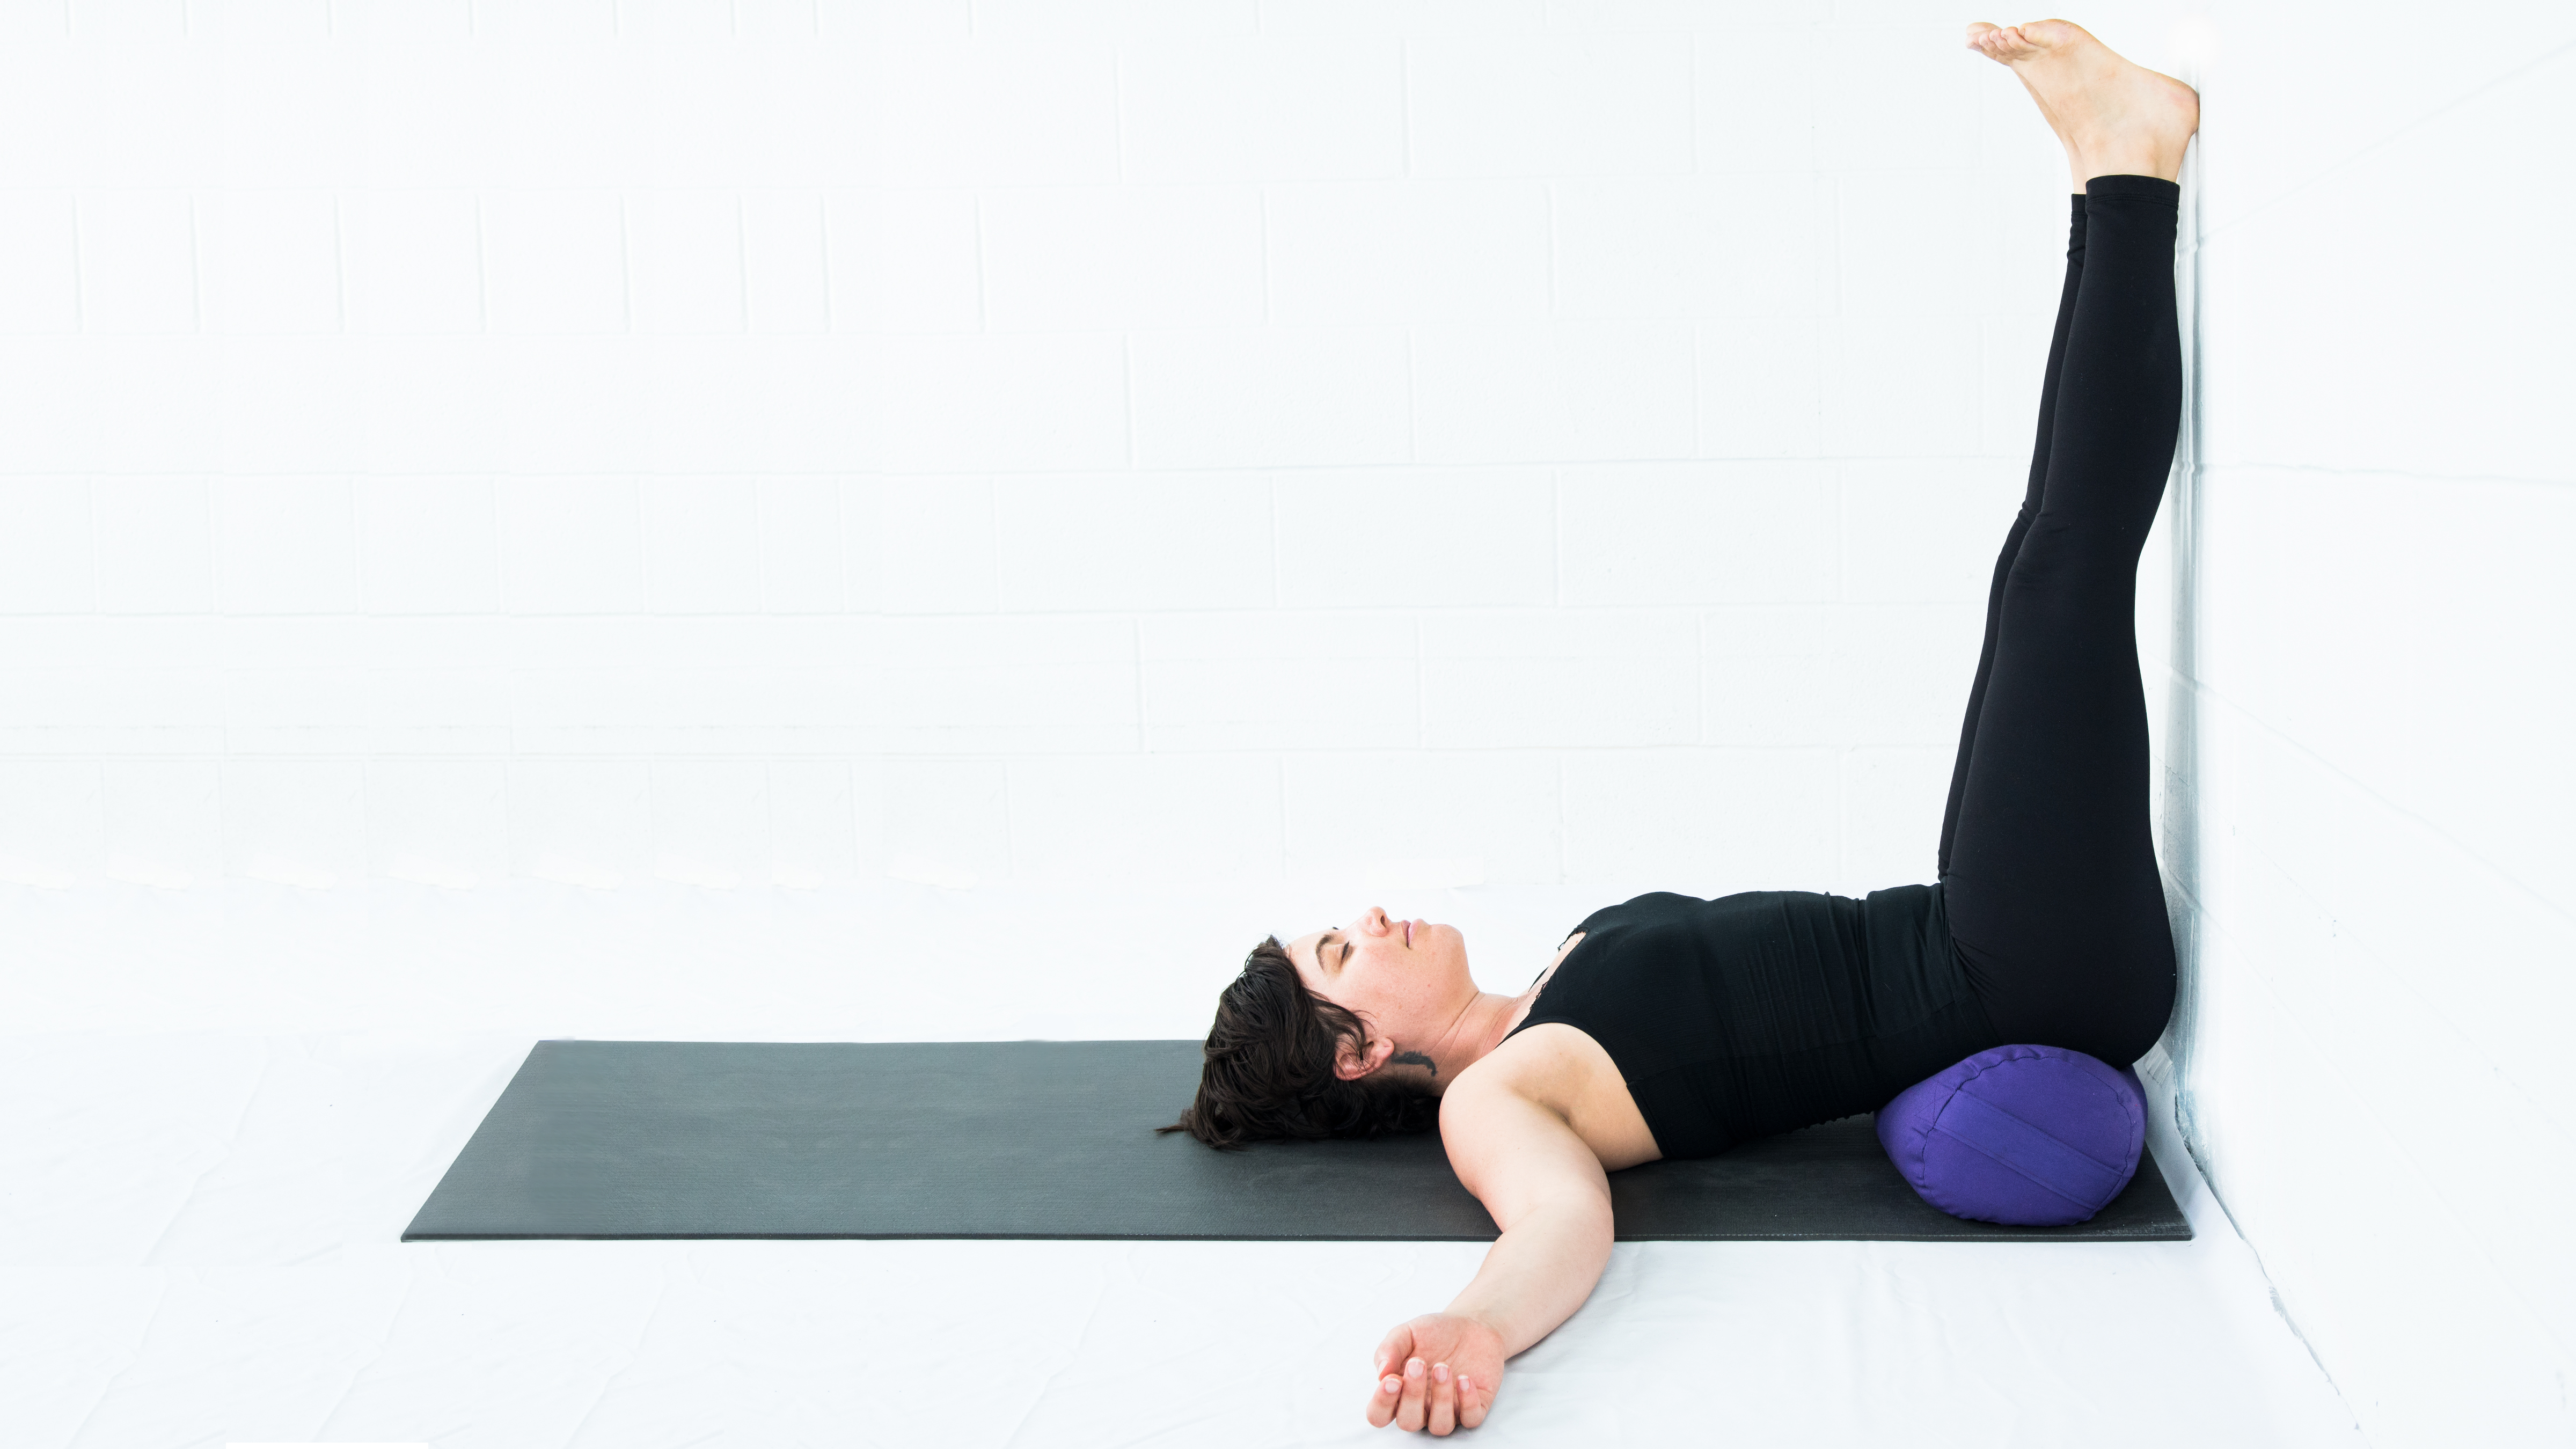 Viparita Karani, Legs up the wall, restorative yoga, yoga with props, yoga at the wall for support, yoga fro stress relief